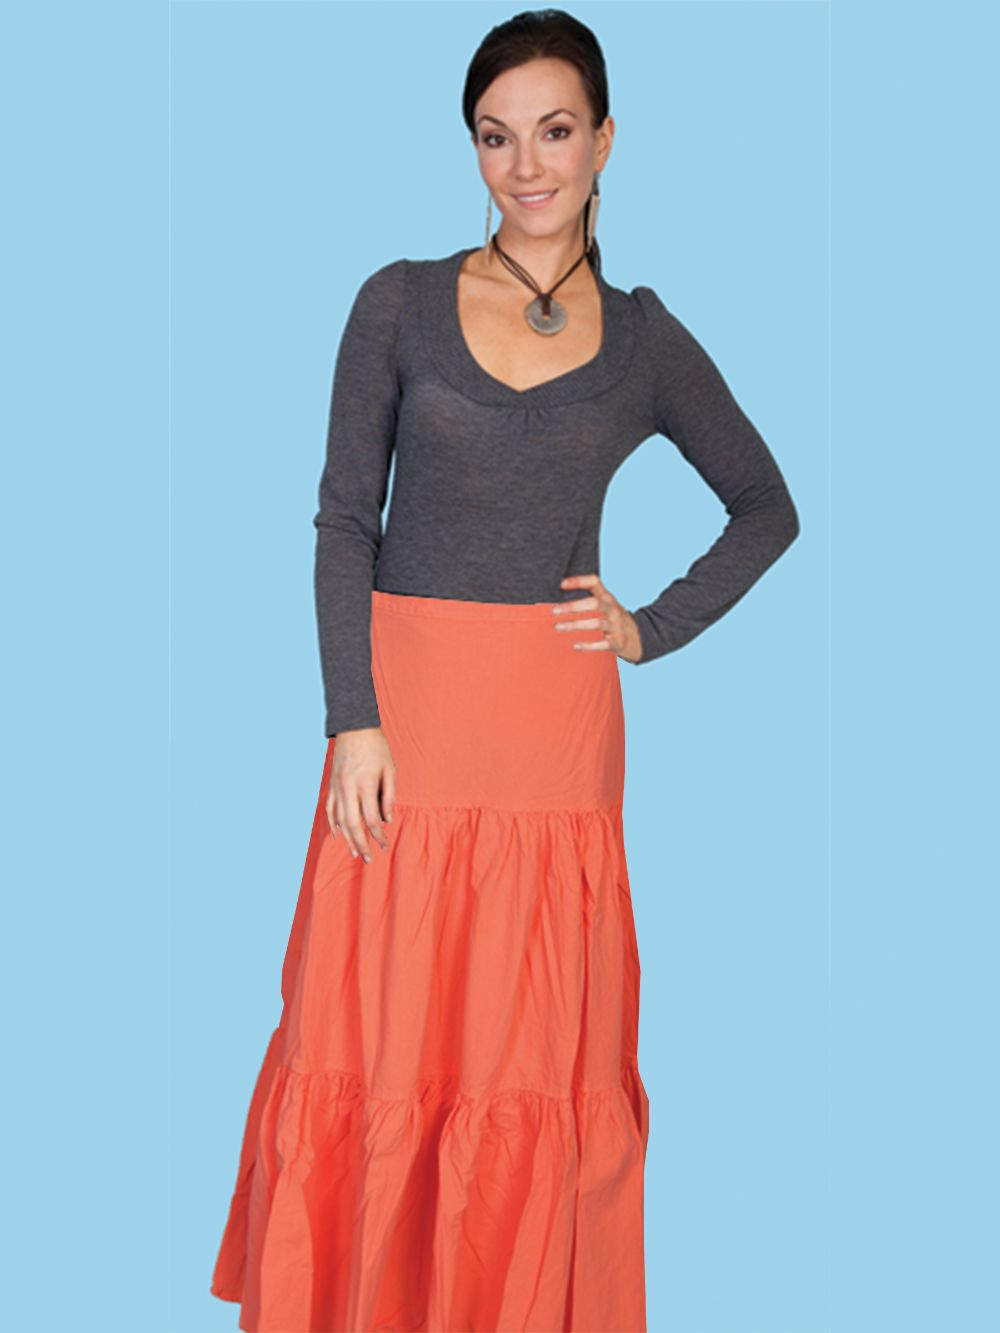 3 Tier Skirt - Psl-077 - Orange. (ships in 1-2 days). #F0_PSL-077_ORA